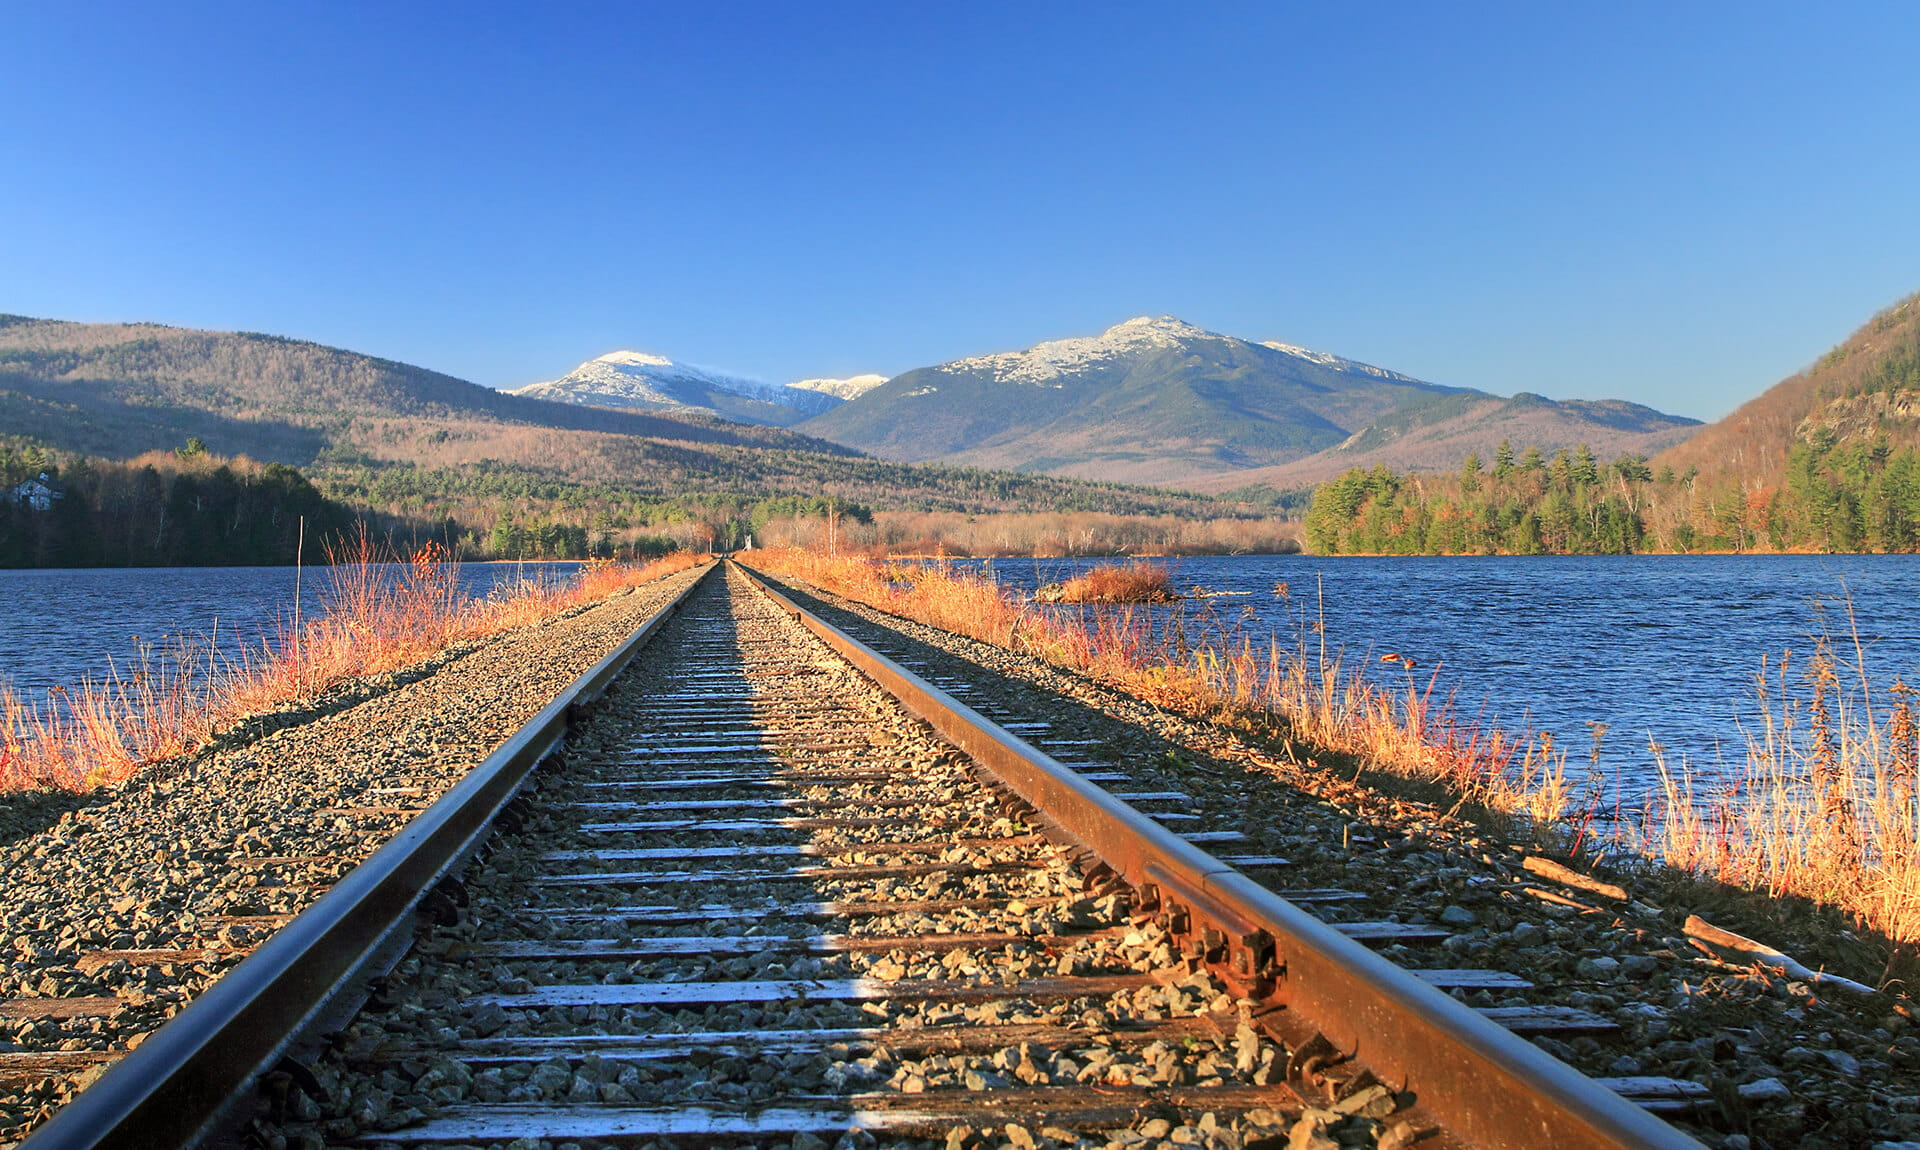 Train tracks to wilderness